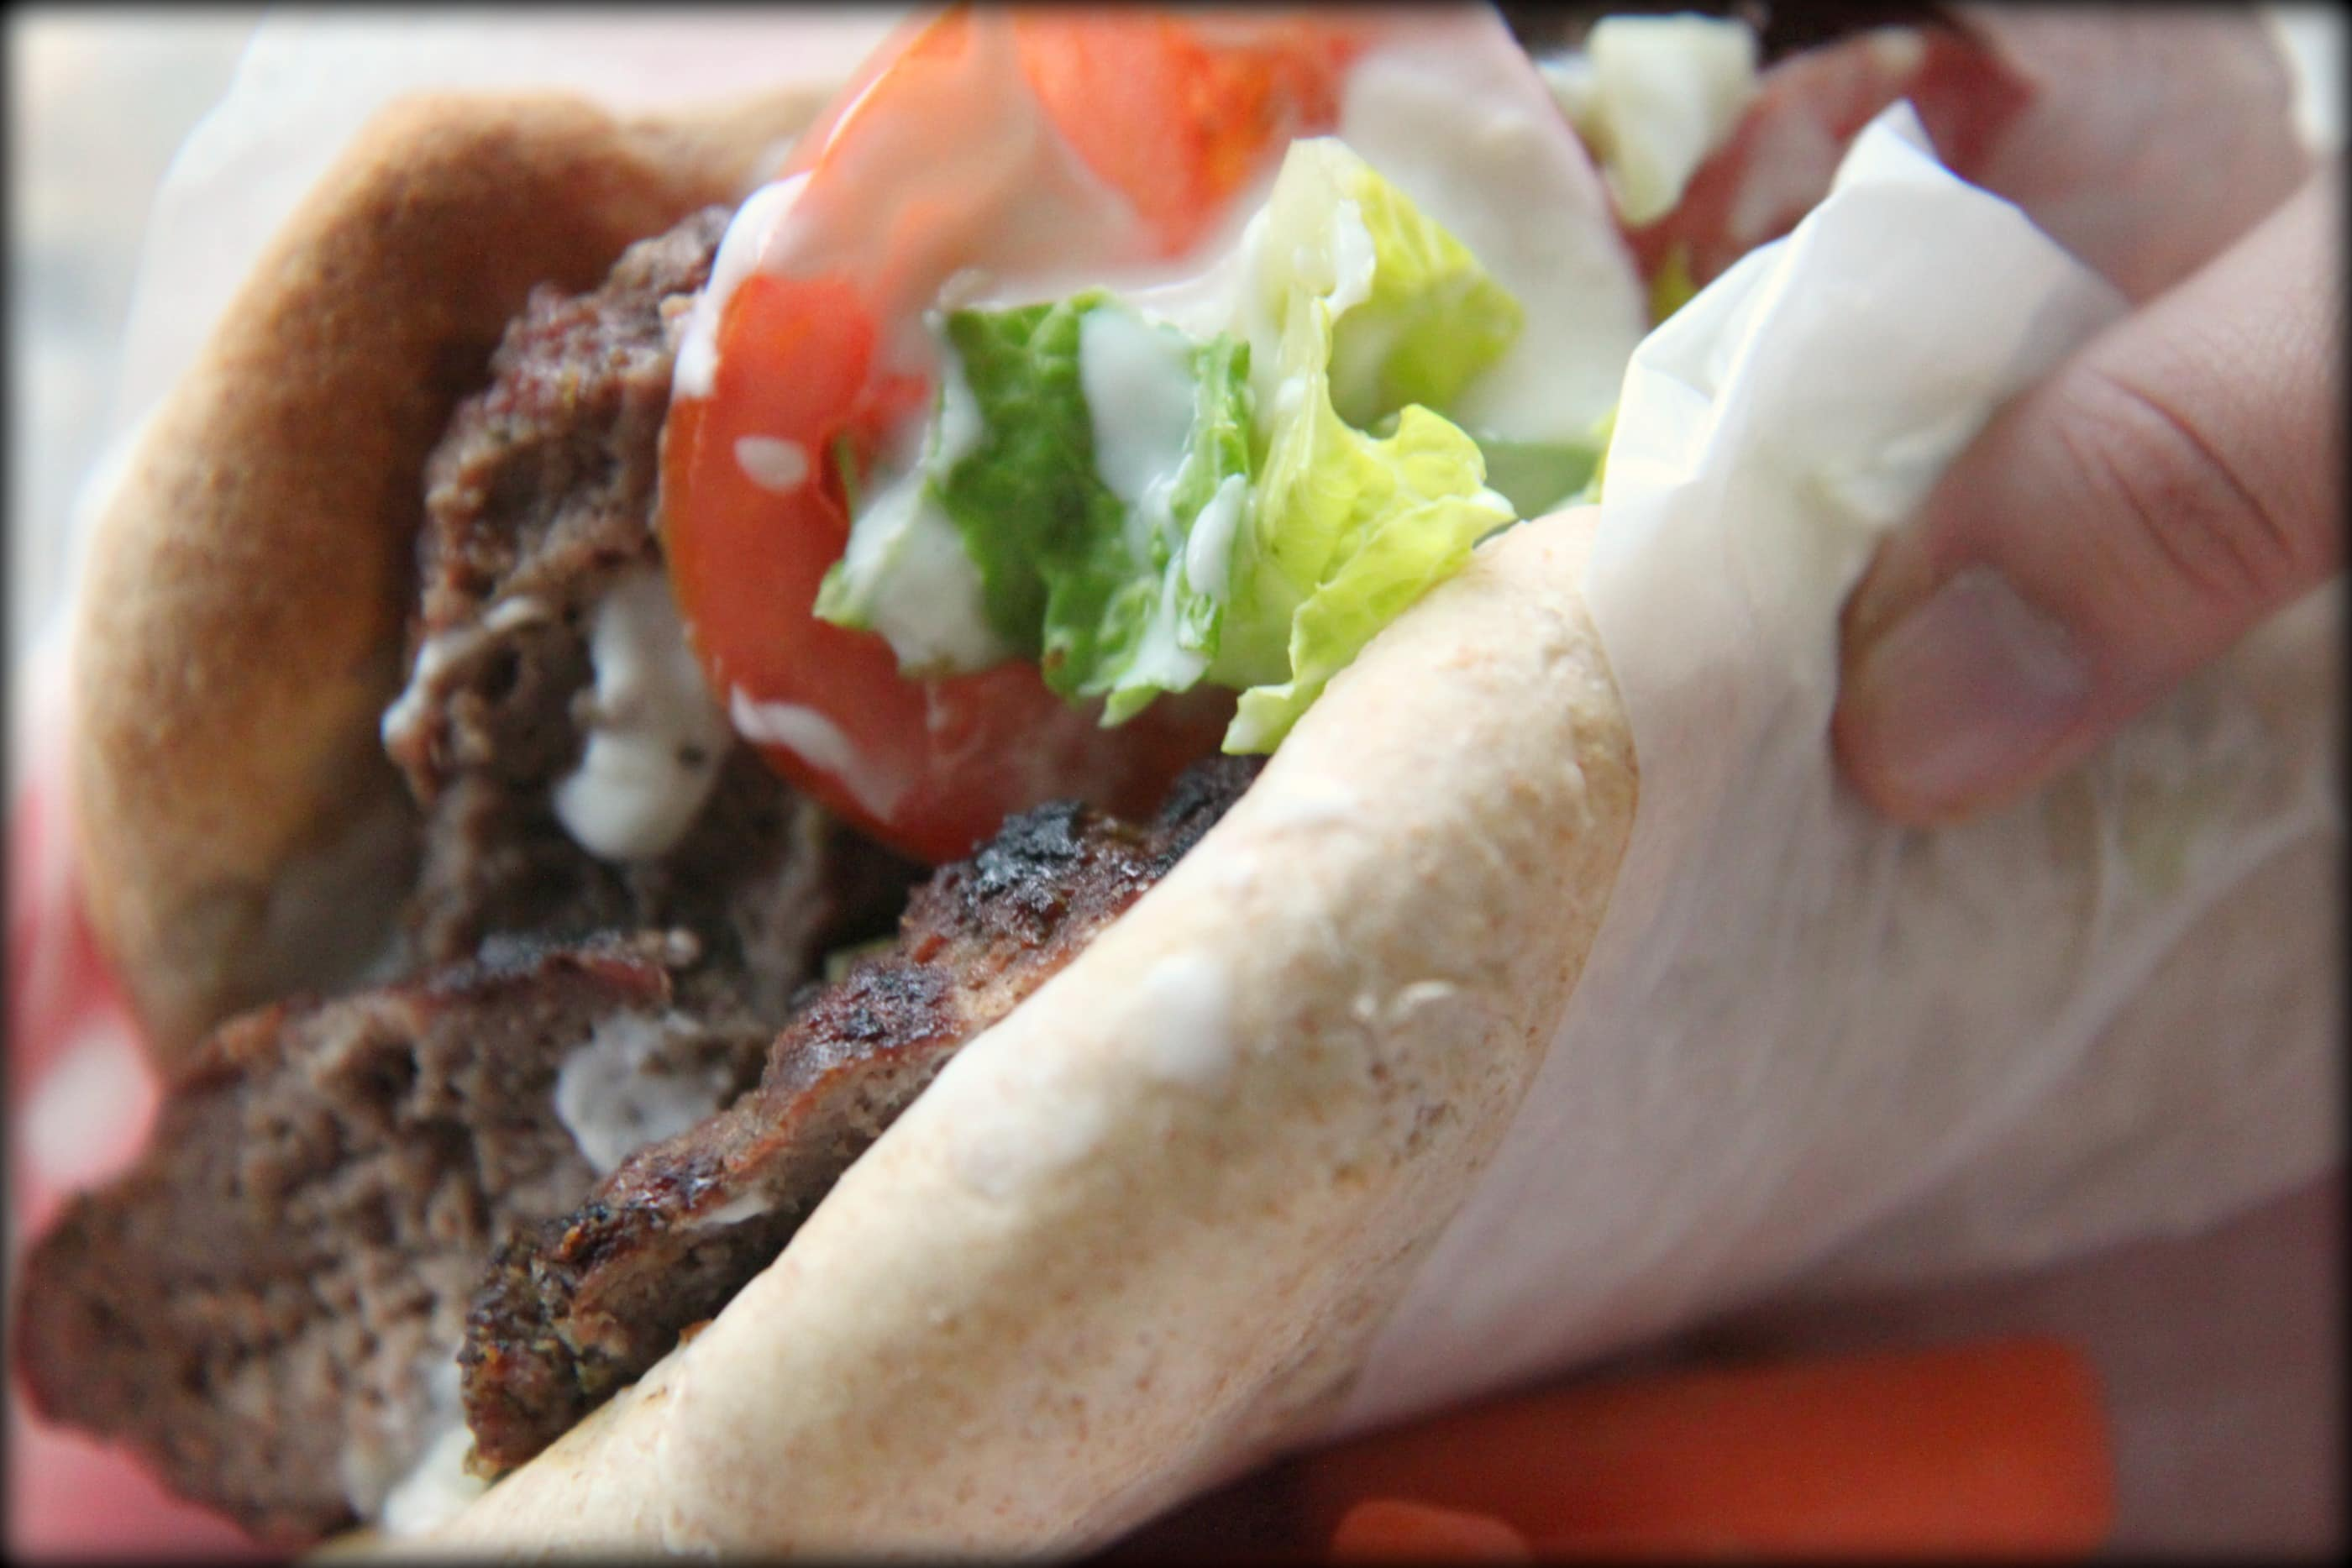 Published June 5, 2011 at 2800 × 1867 in Grilled Ground Beef Gyros